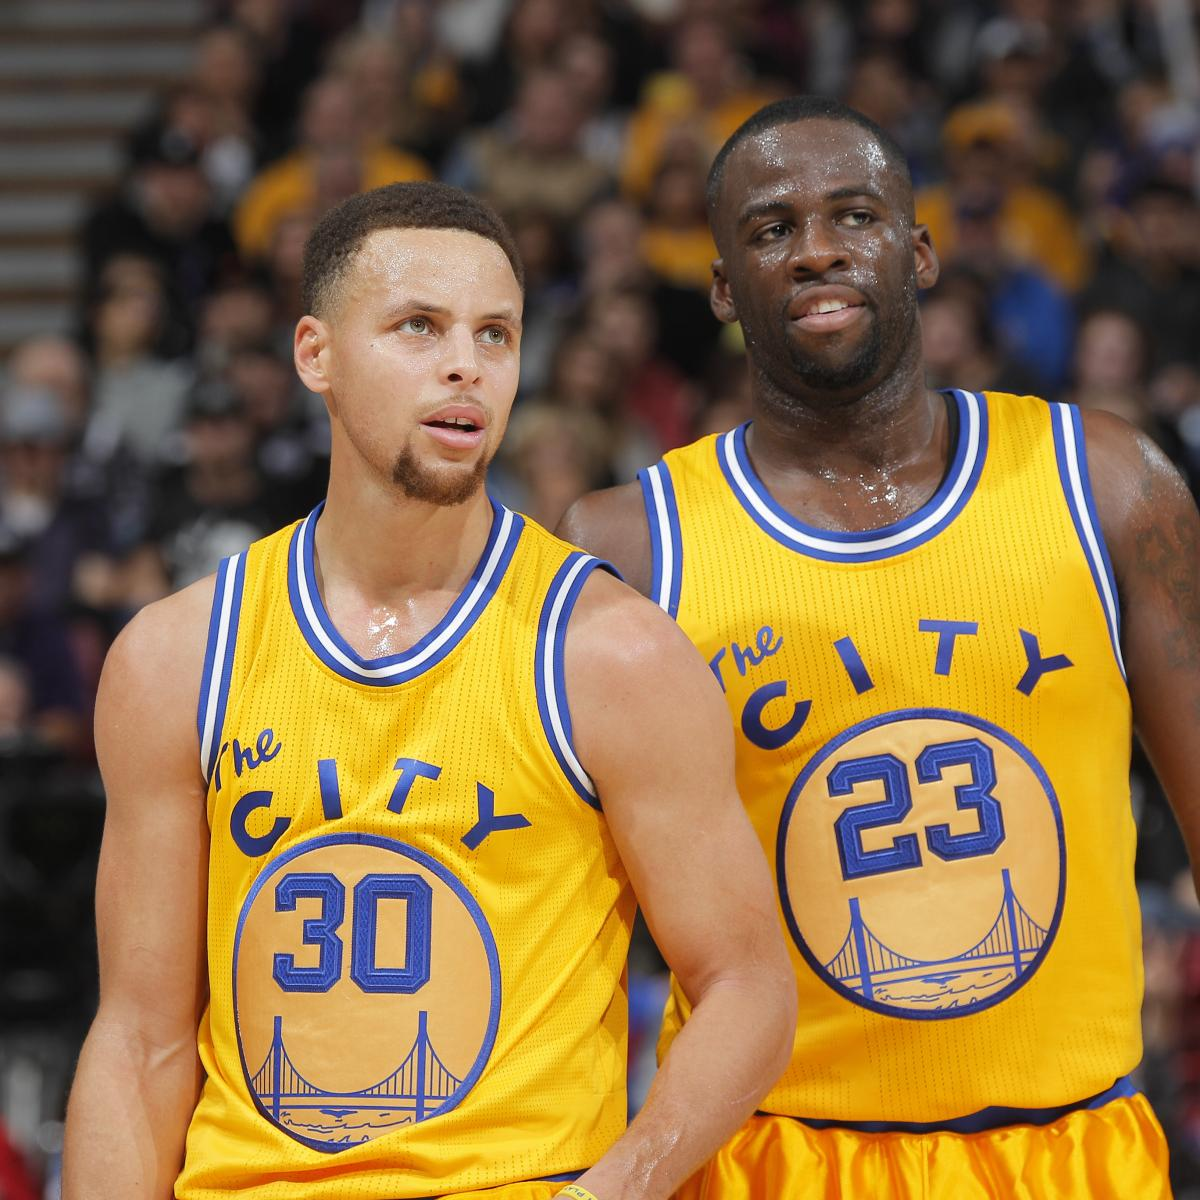 Golden State Warriors Record Without Steph Curry: Draymond Green Or Stephen Curry: Who's Been More Valuable